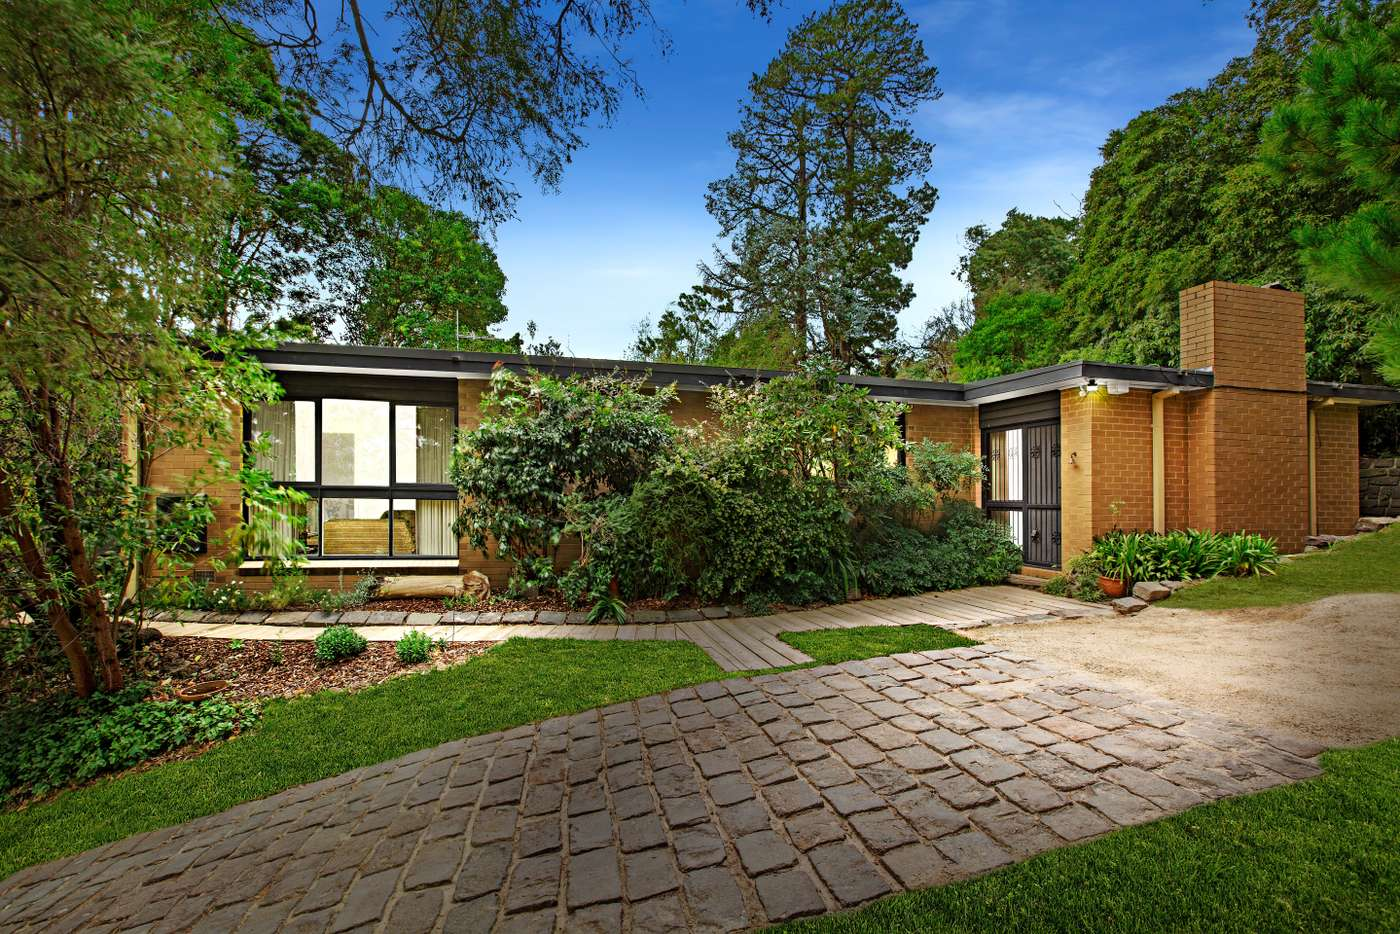 Main view of Homely house listing, 24 Shane Crescent, Croydon South VIC 3136